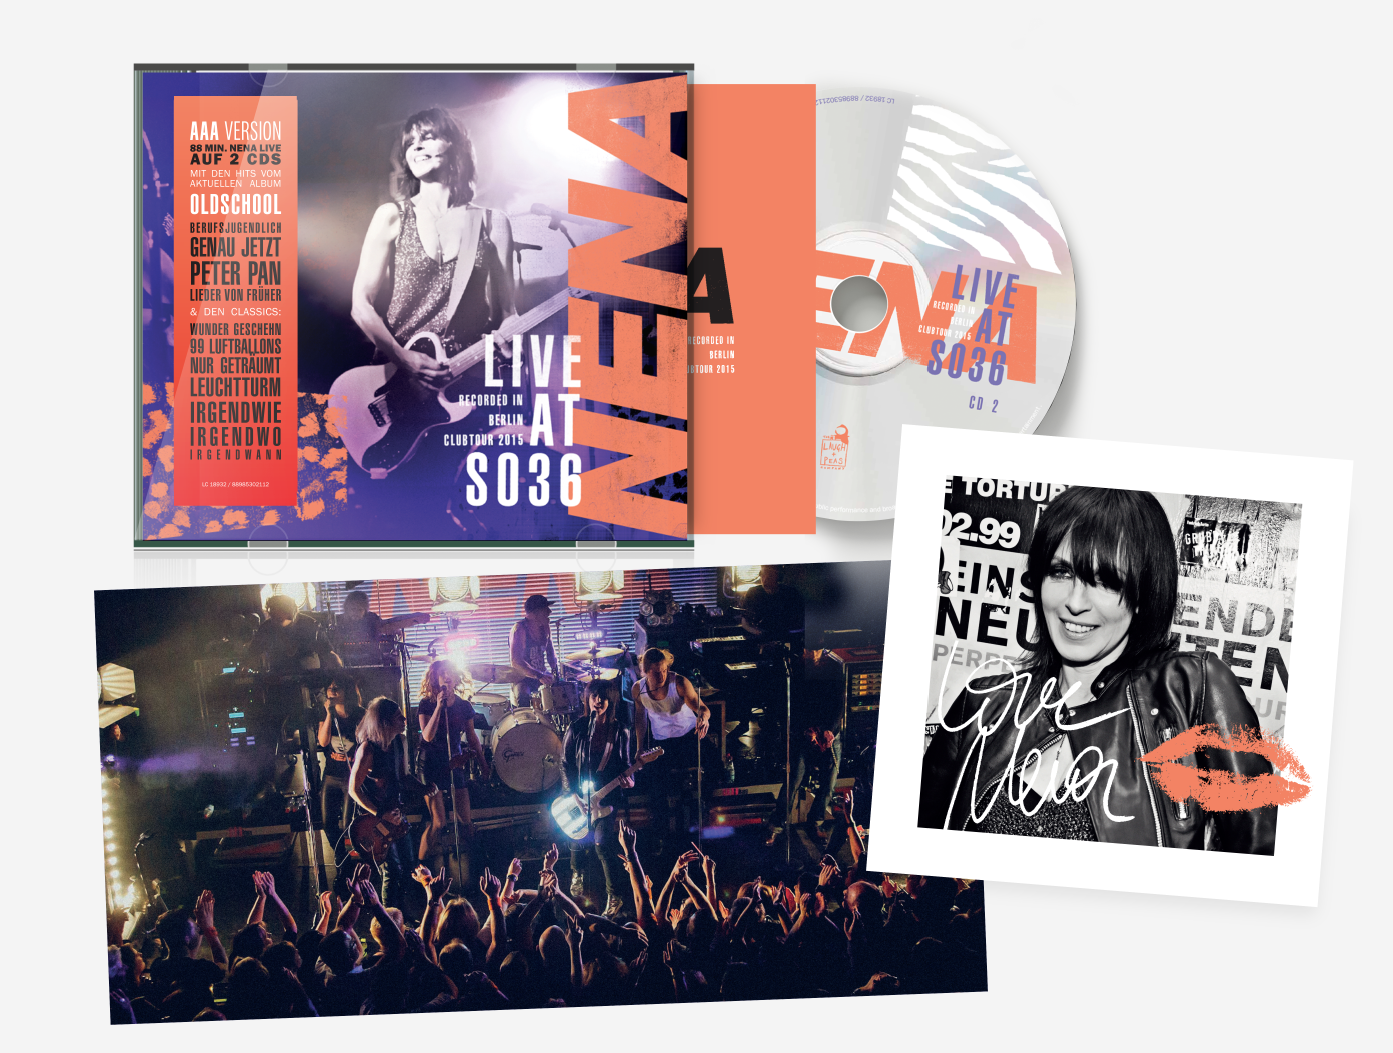 Live at so36 nena offizielle website 02 3fach vinyl aaa box 21 tracks 88 min inkl special etched autographed vinyl extended booklet with lyrics chords double cd album superposter hexwebz Images